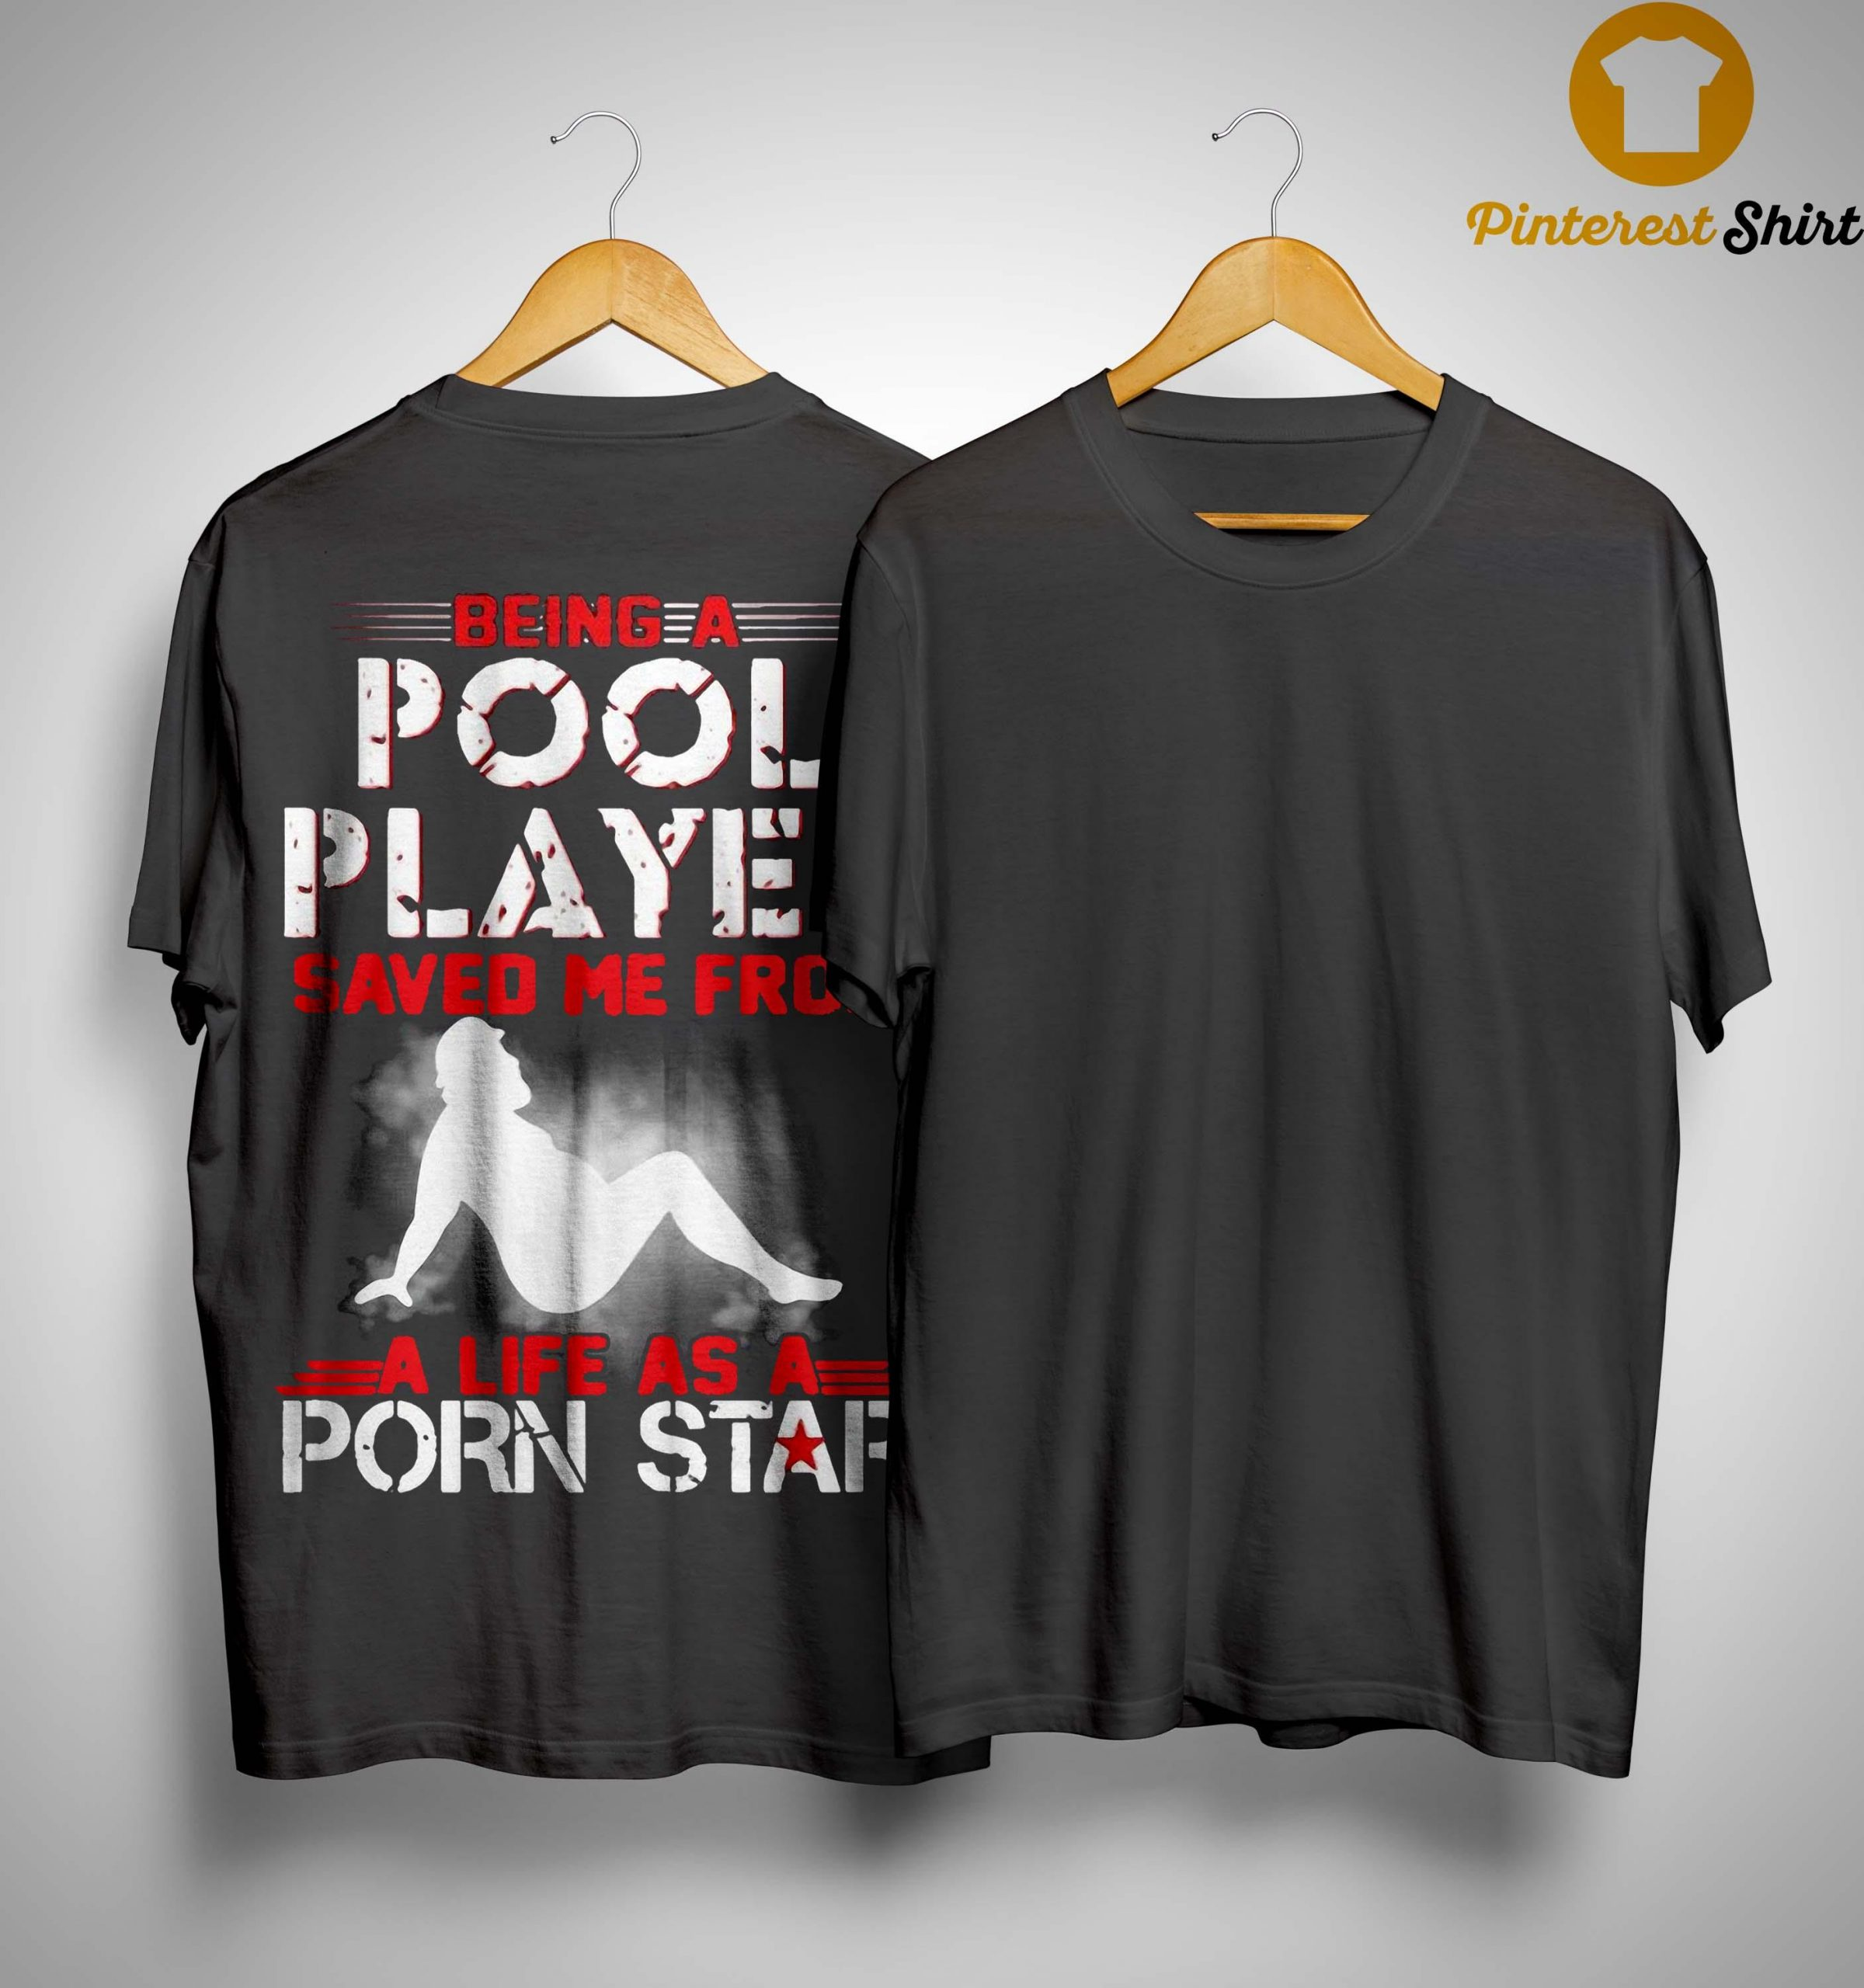 Being A Pool Player Saved Me From A Life As A Porn Star Shirt